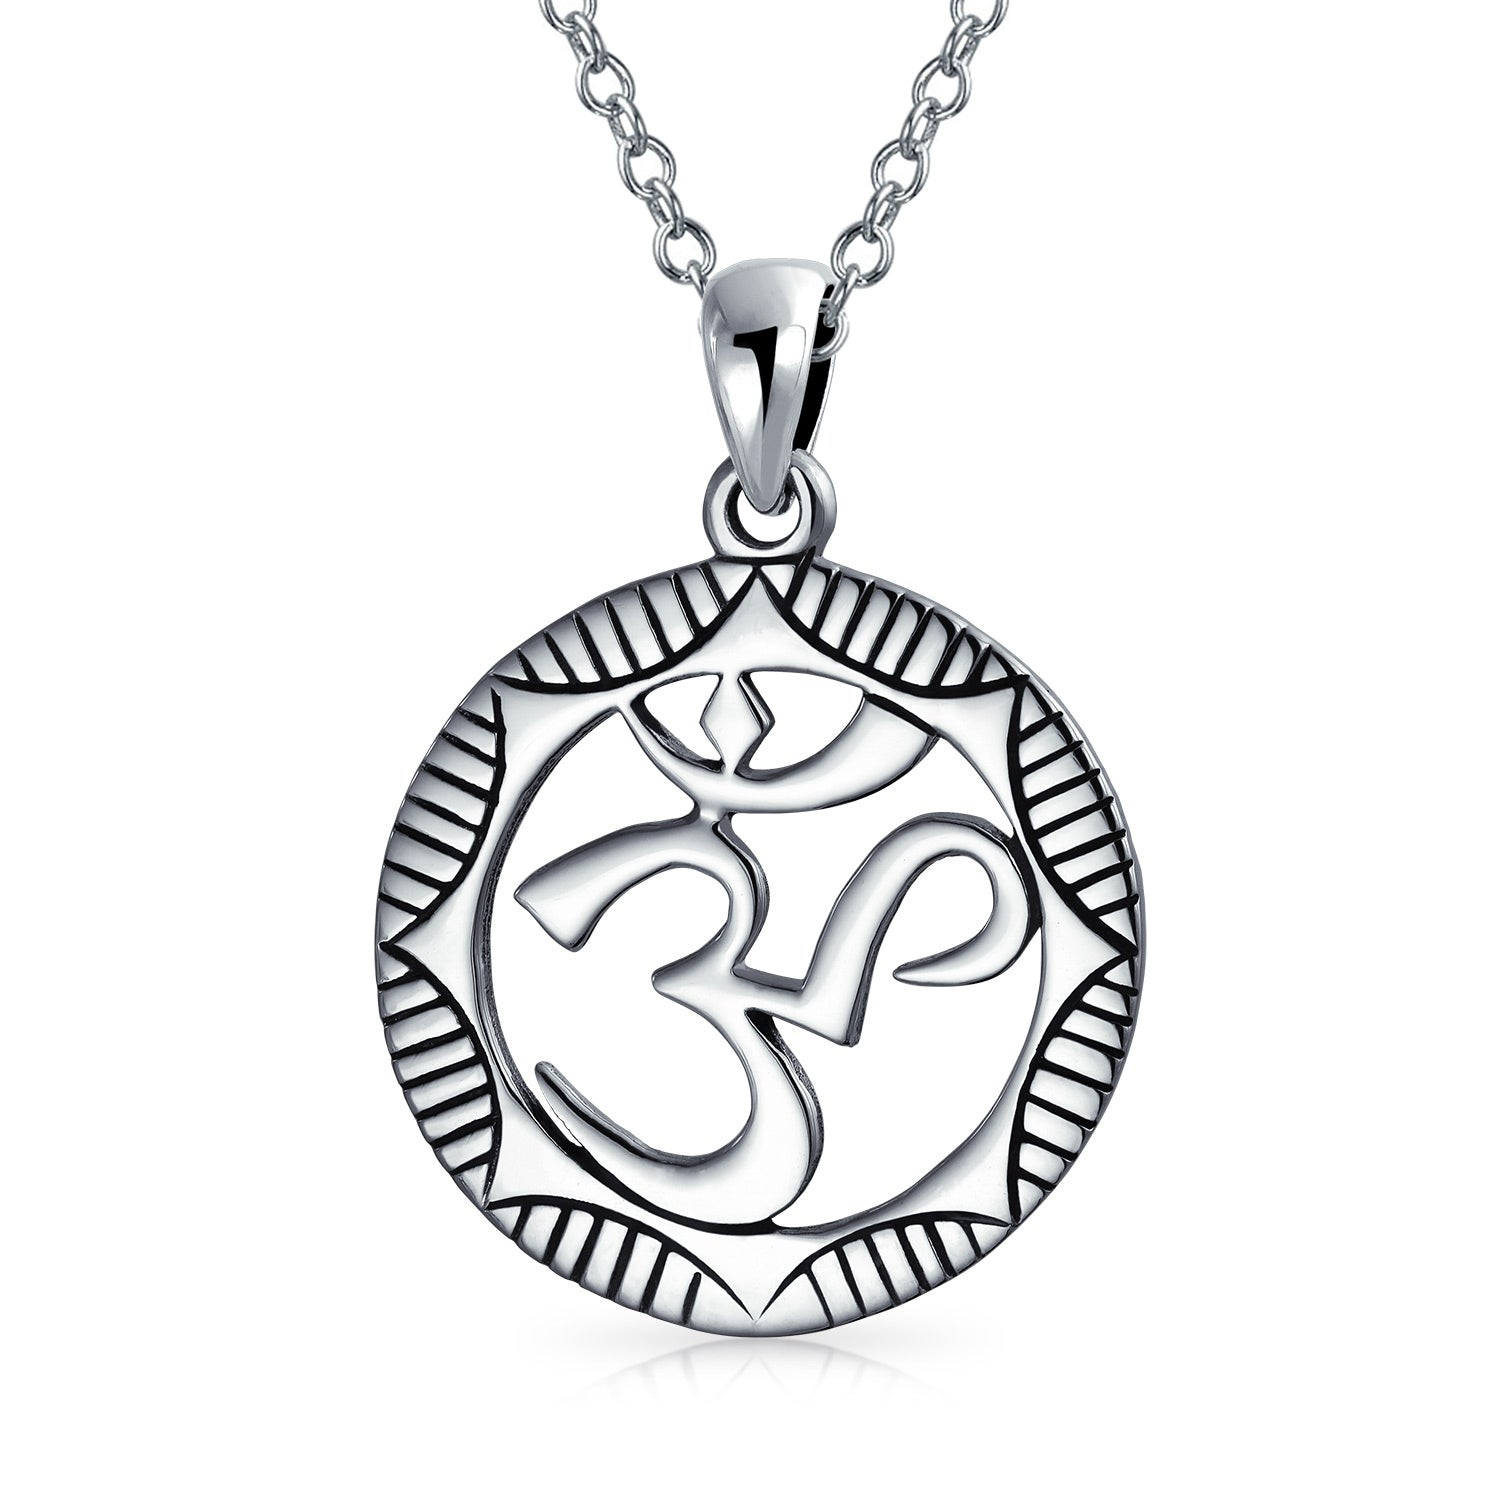 Round Circle Sanskrit Symbol Yoga Medallion Aum Om Ohm Pendant Necklace For Women Oxidized 925 Sterling Silver